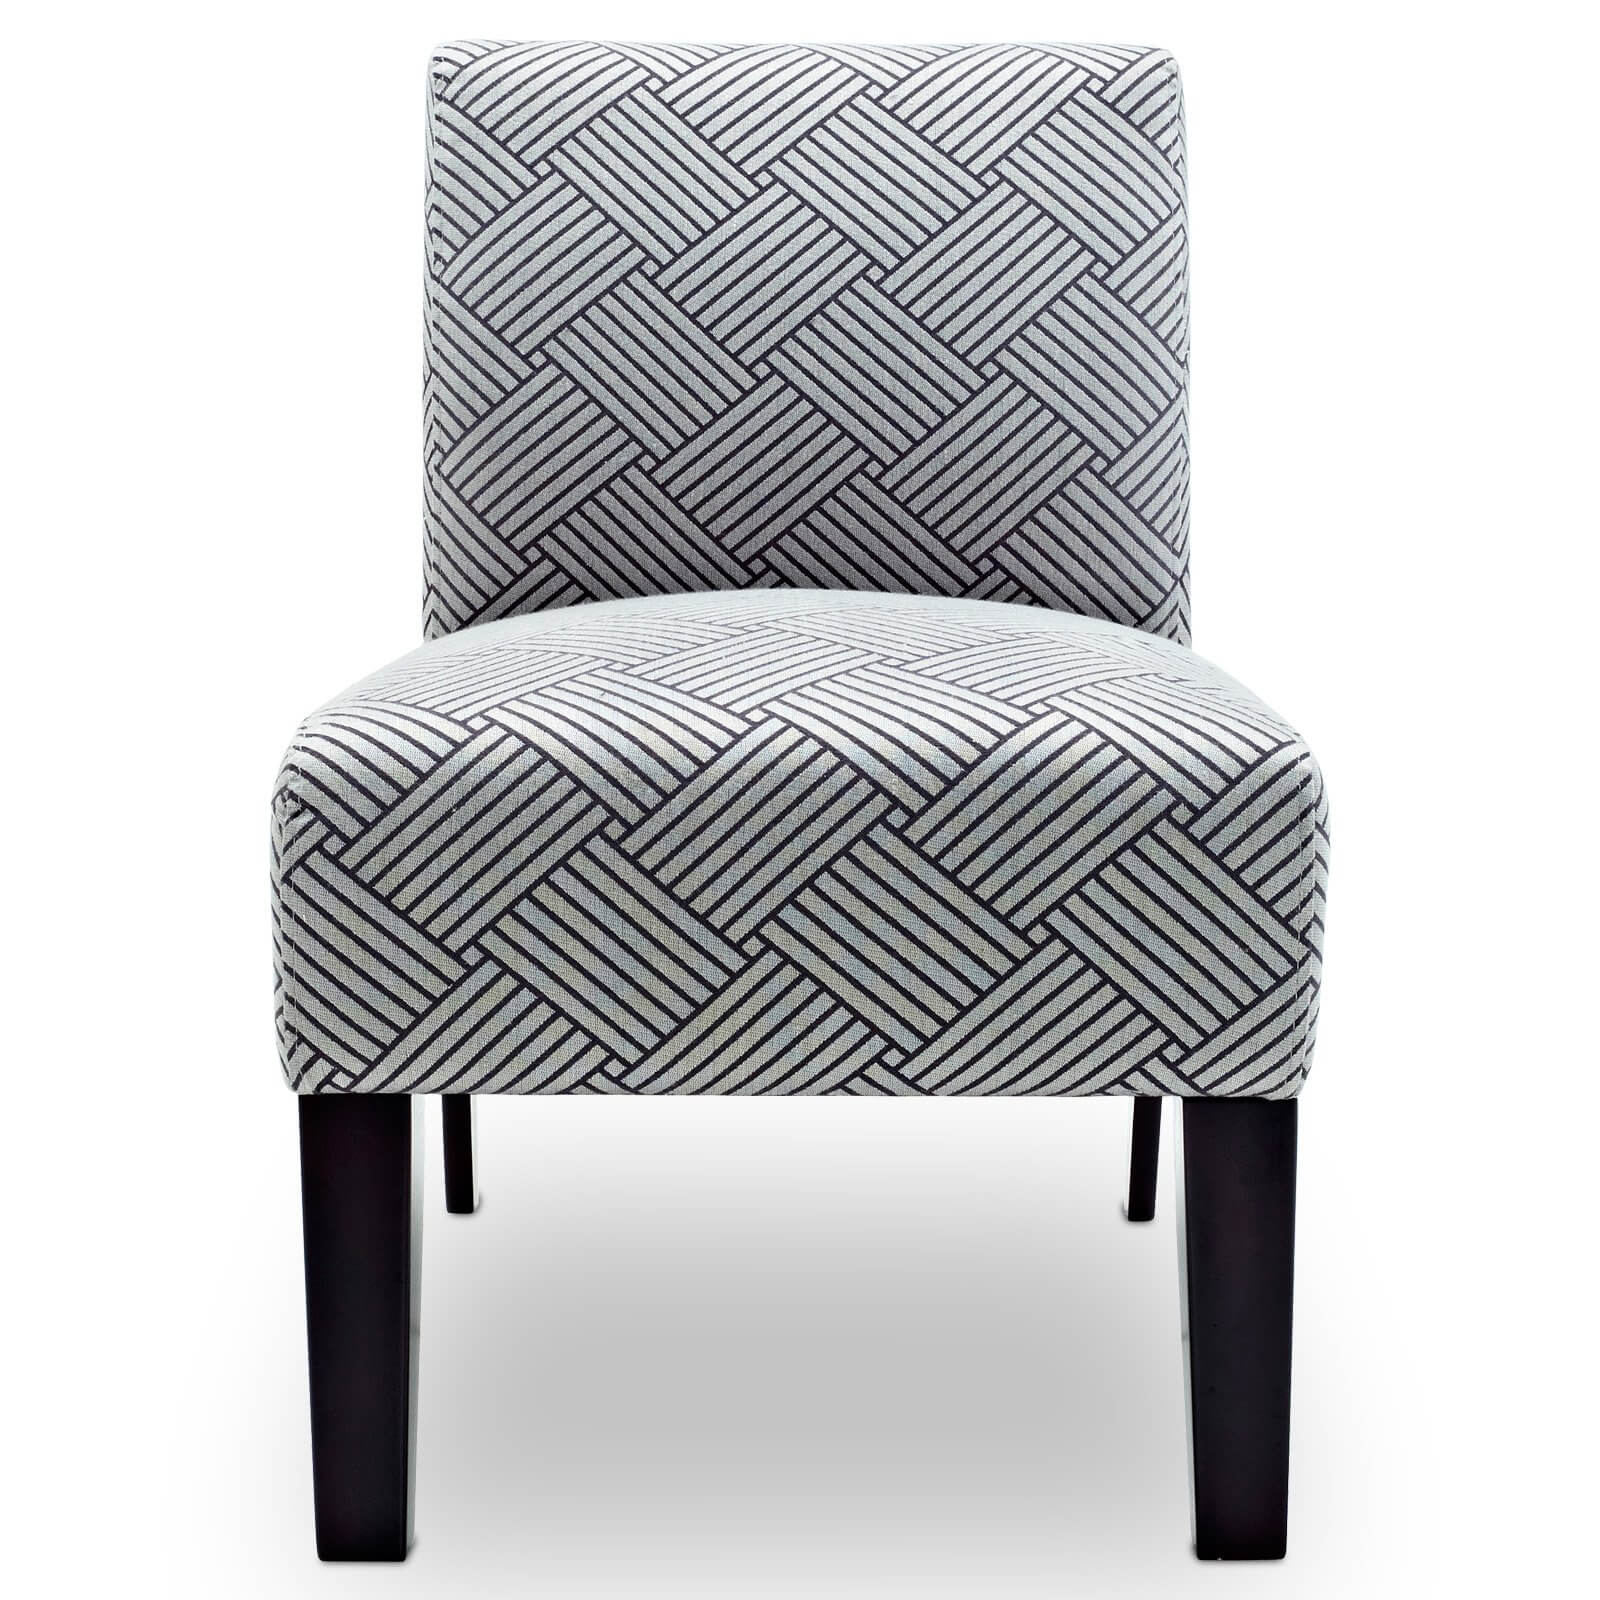 accent chairs for living room under 200 curtains with white walls 10 attractive 100 2019 i love the pattern of this chair because like geometric patterns